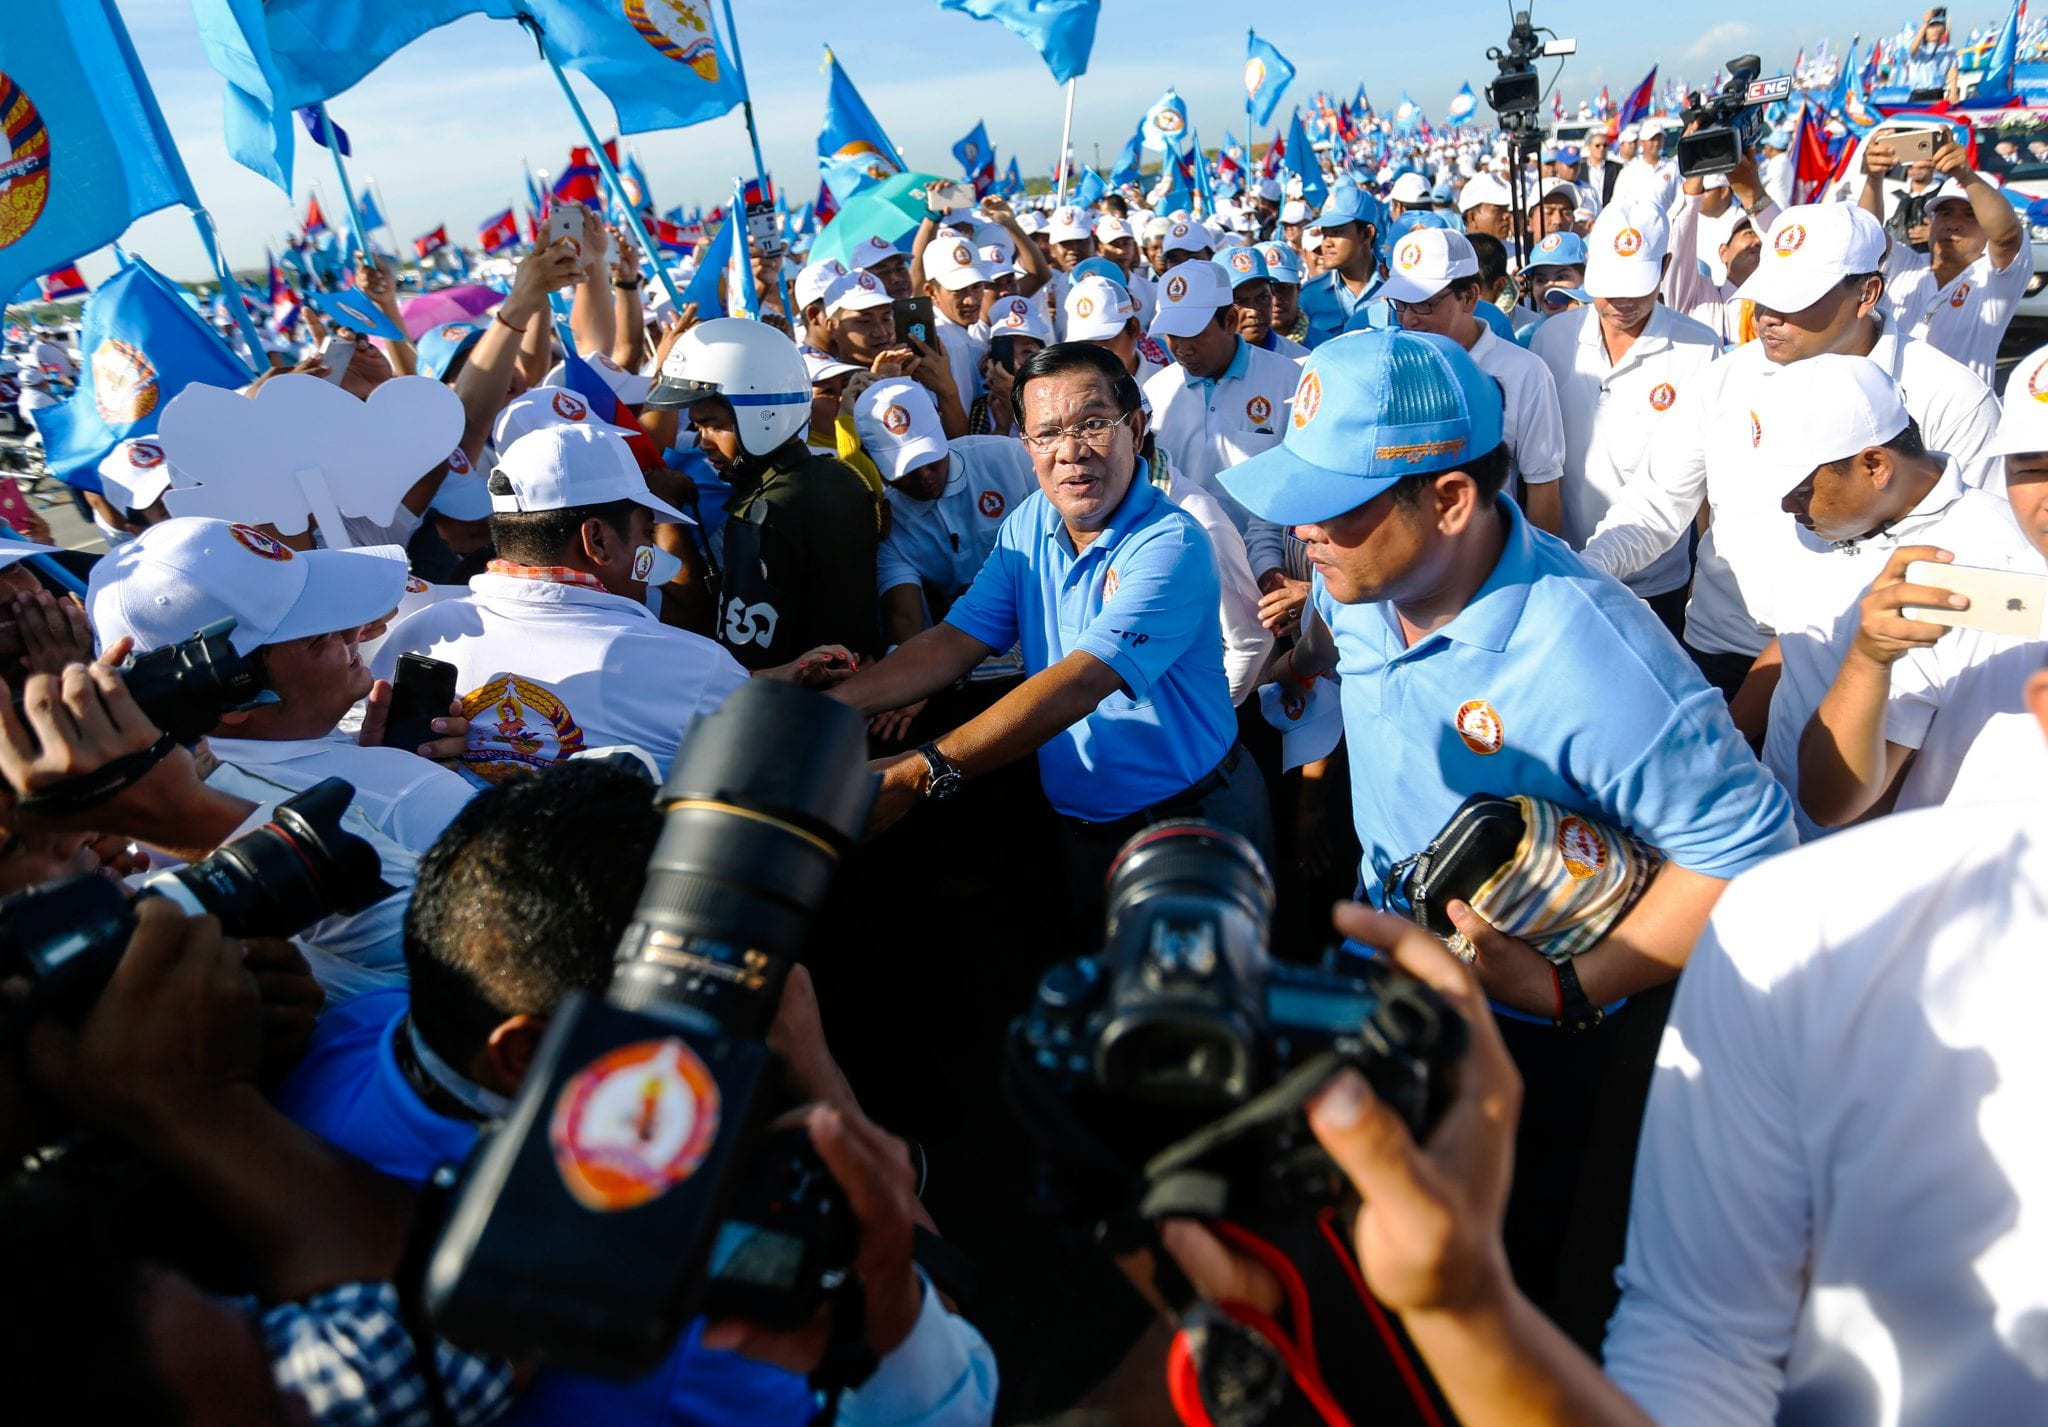 Prime Minister Hun Sen joins a CPP party rally in June 2017. CamboJA